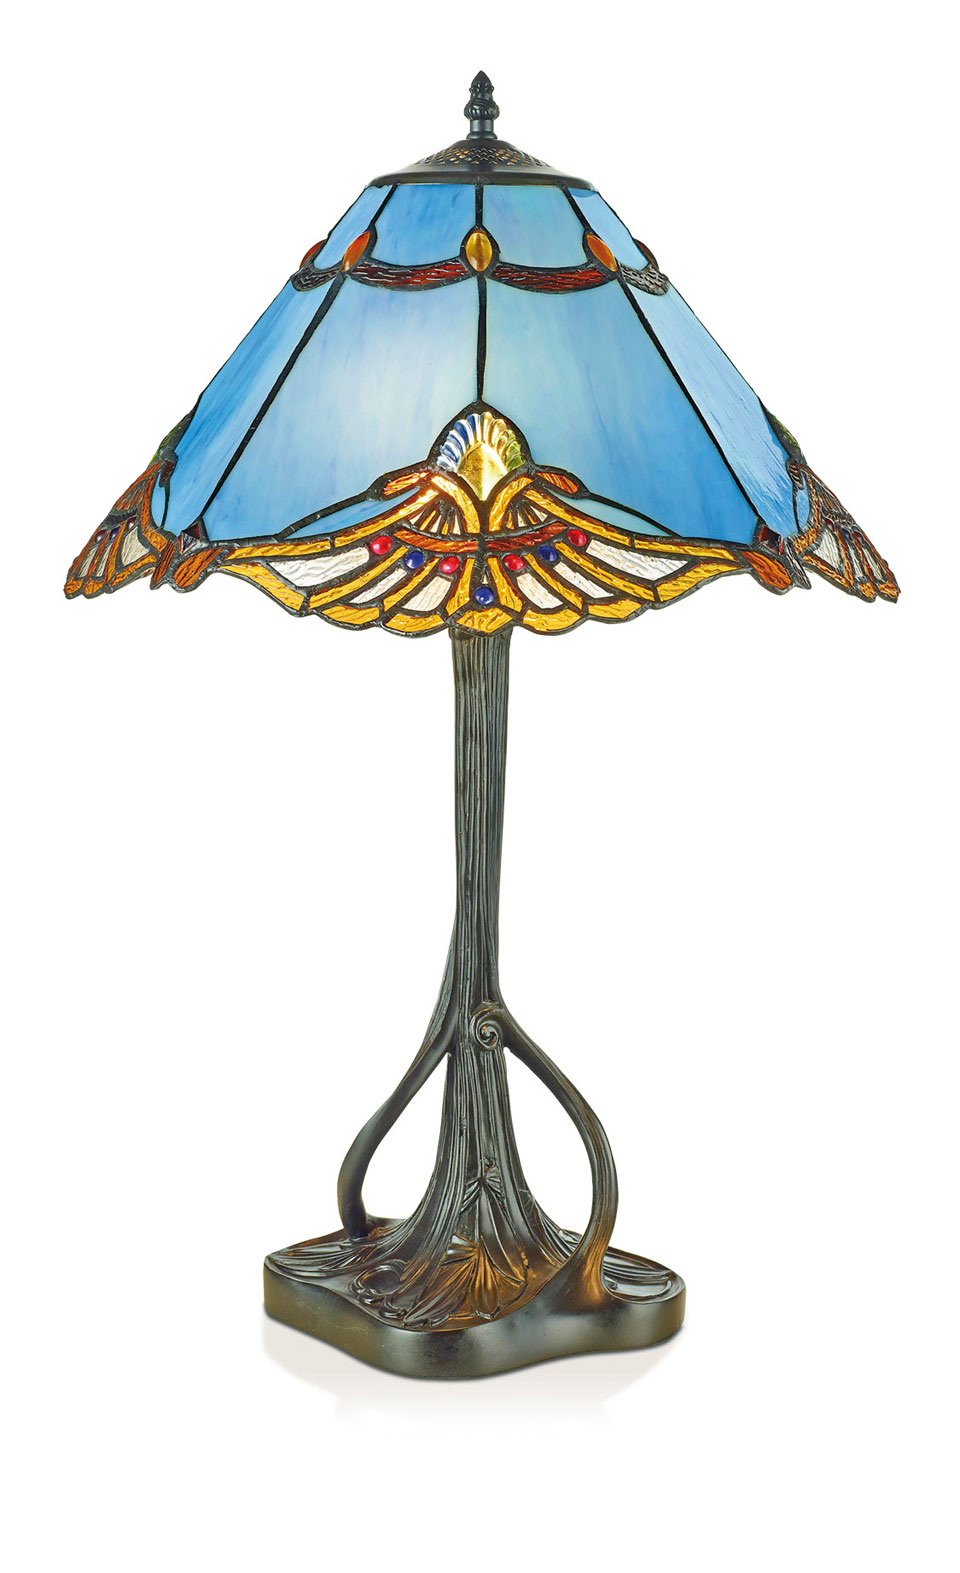 Lampe de table Tiffany tronc mêlé. Artistar.